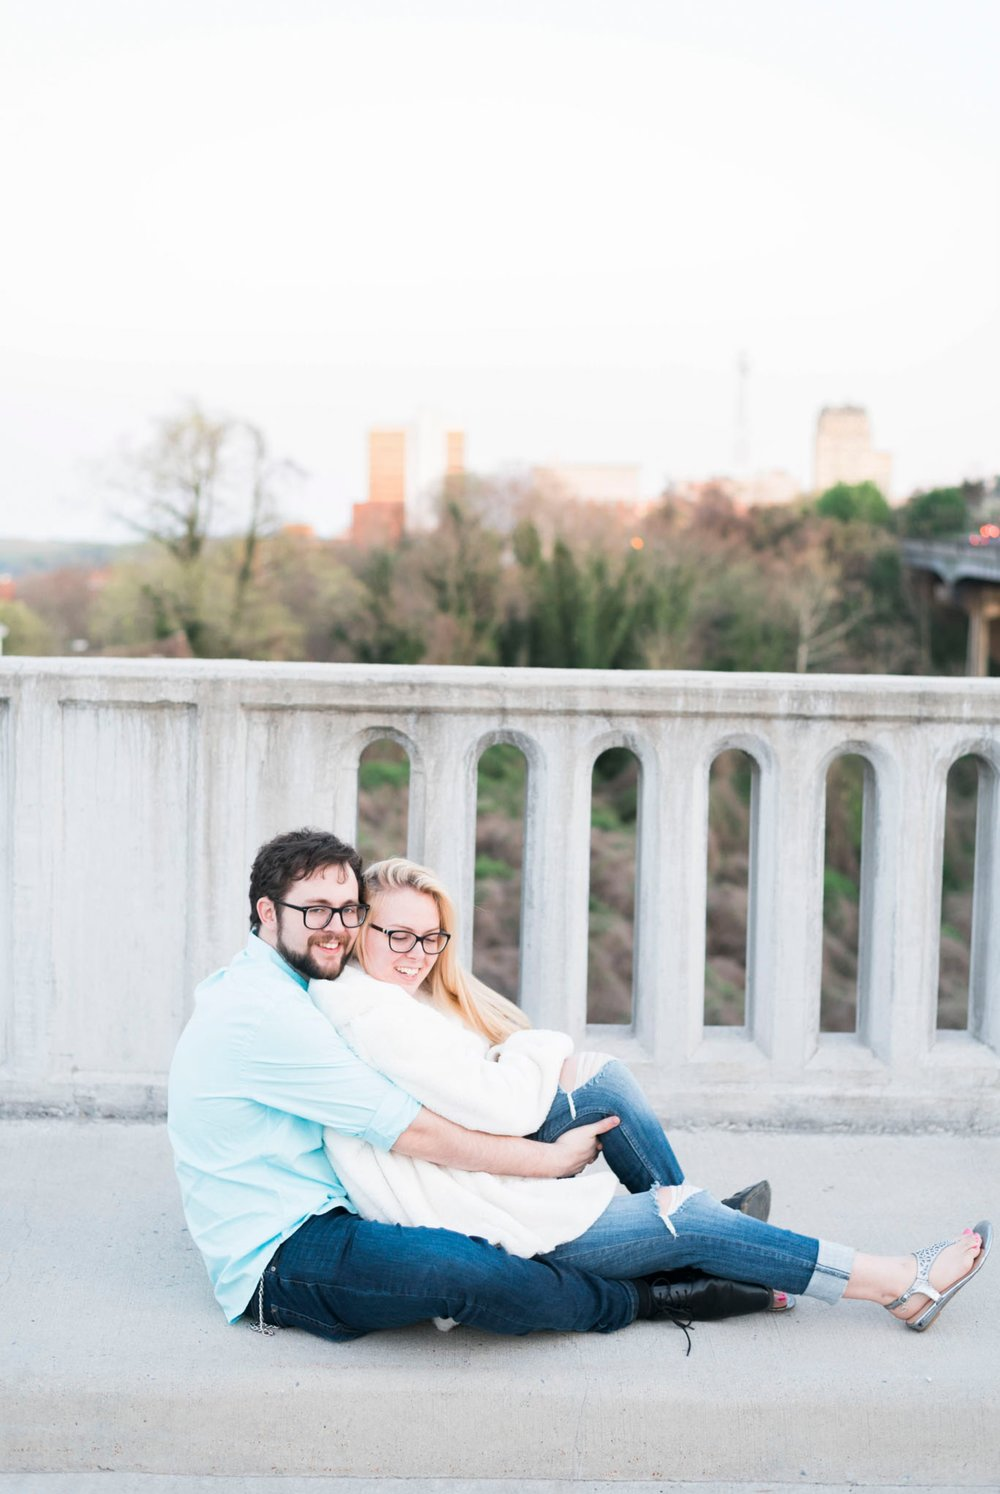 LaunceTarah_VirginiaWeddingPhotographer_EngagementSession_LynchburgVA_DowntownLynchburg_SpringEngagement 29.jpg